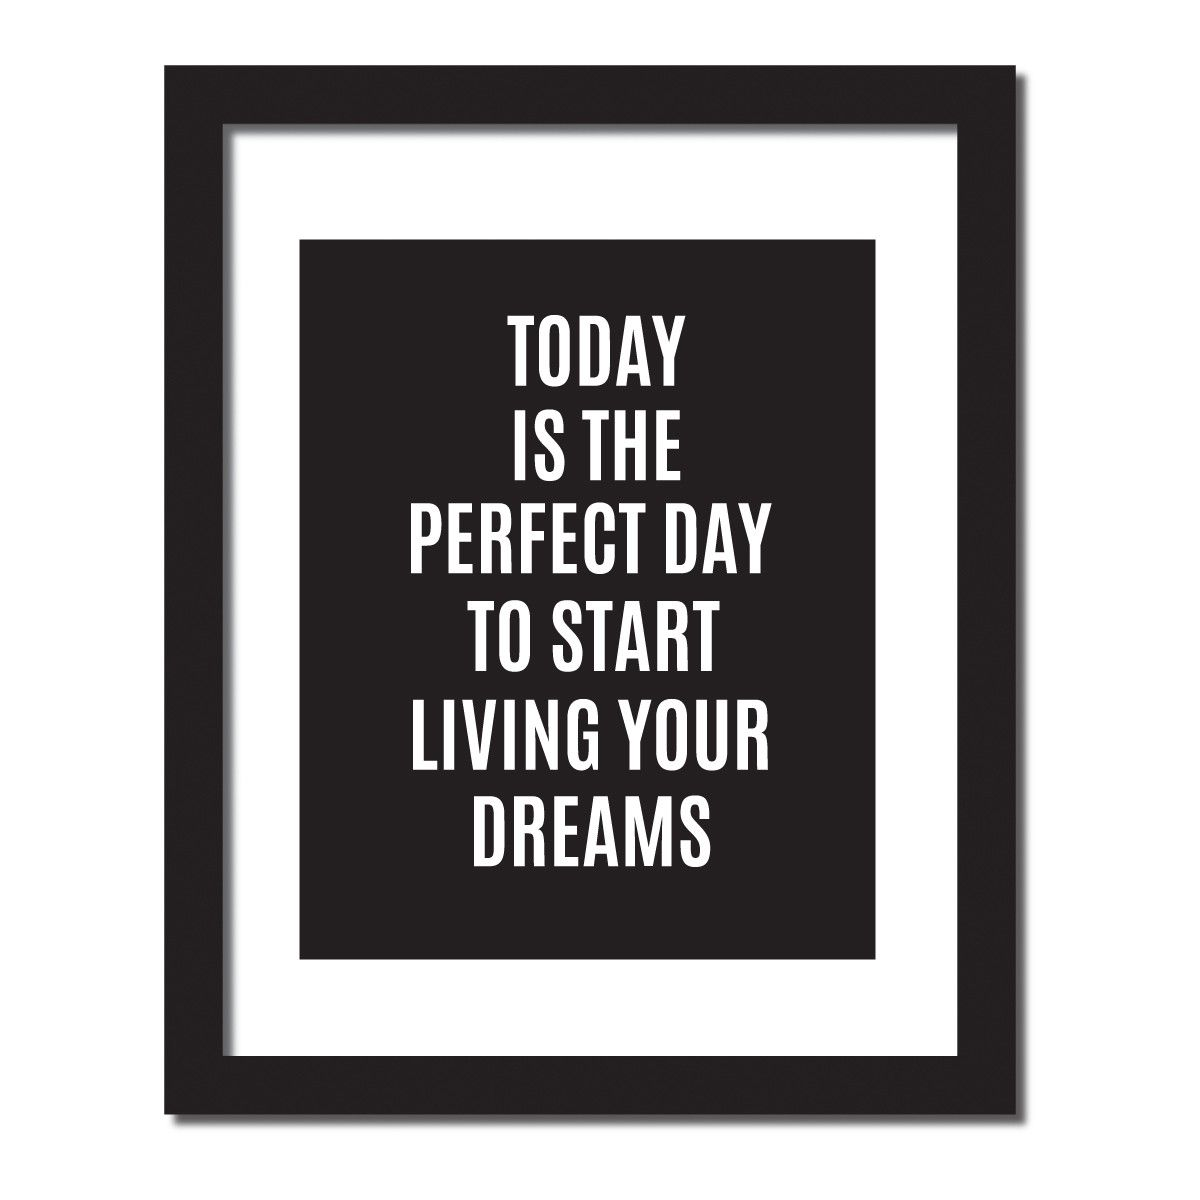 Inspirational Quotes About Failure: Inspirational Quote Print 'Today Is A Perfect Day To Start